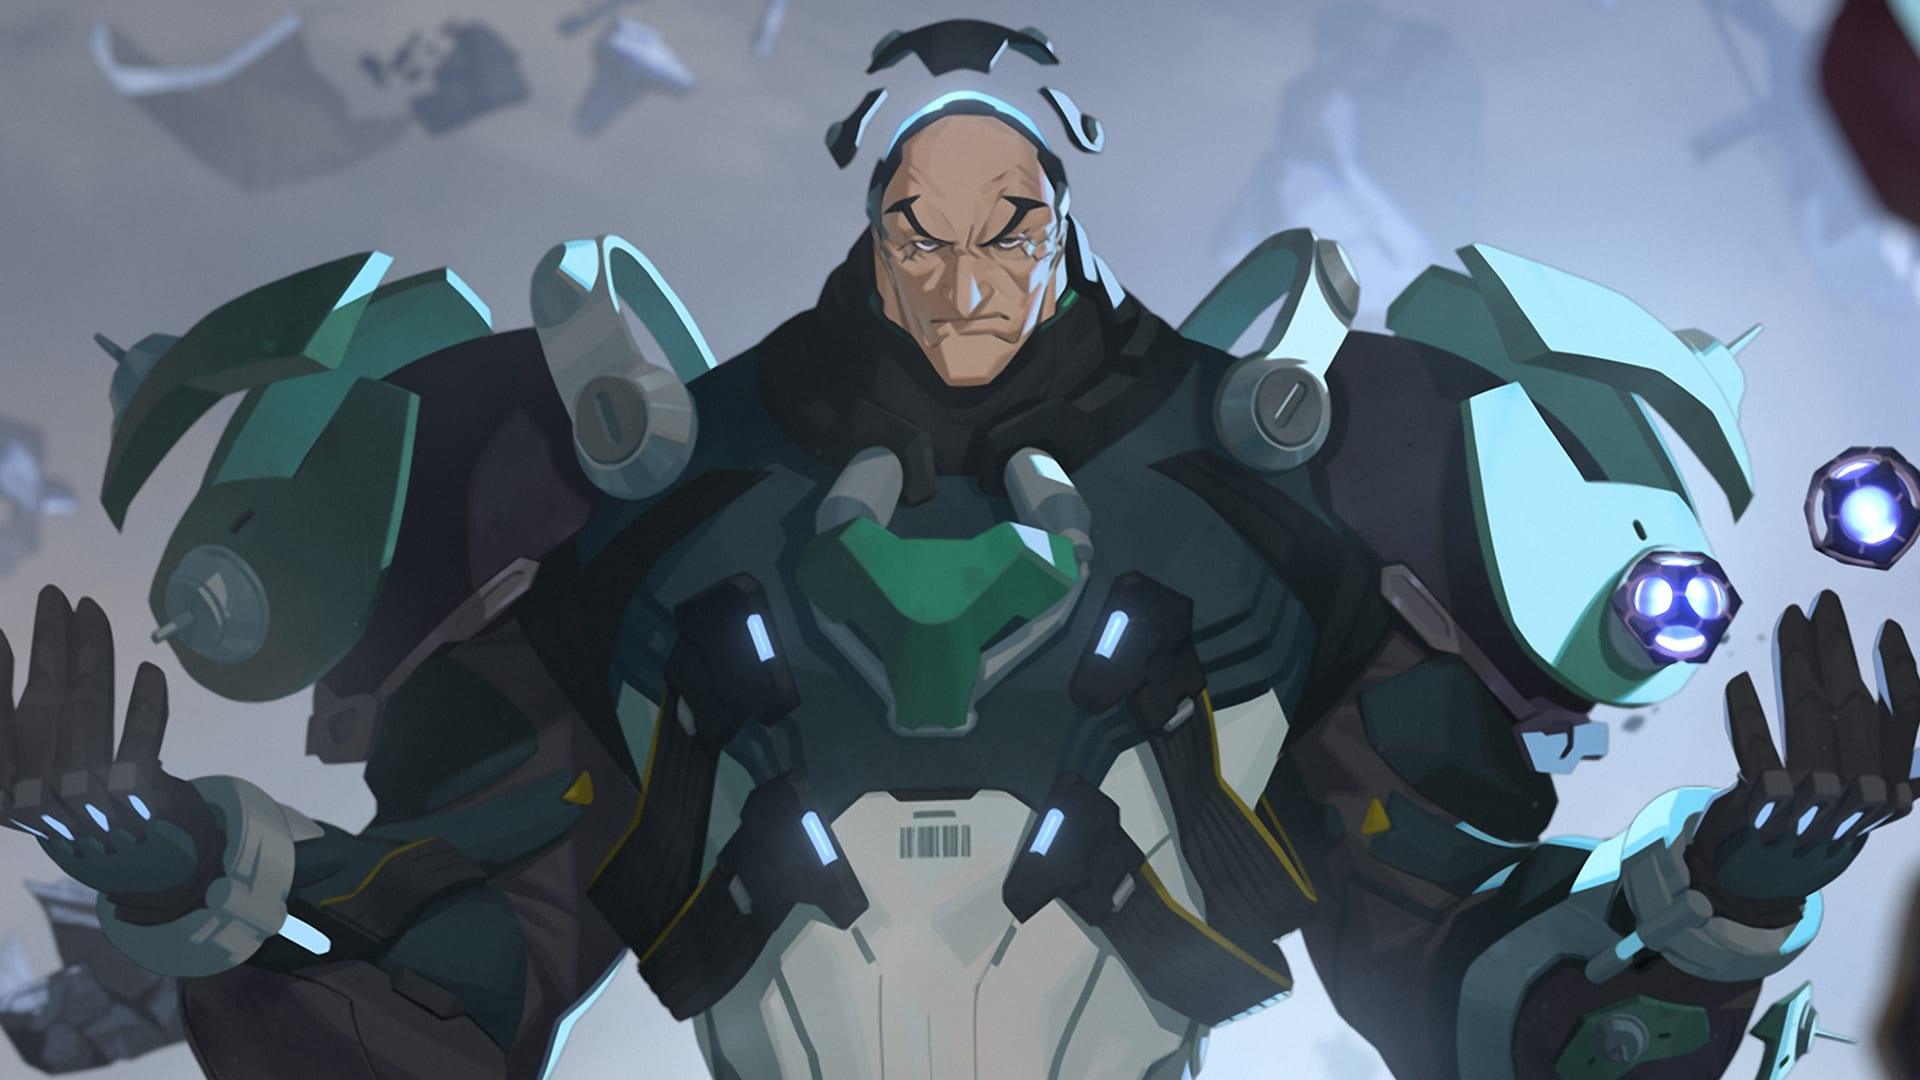 Big Overwatch update: Sigma and Role Queue | Sausage Roll